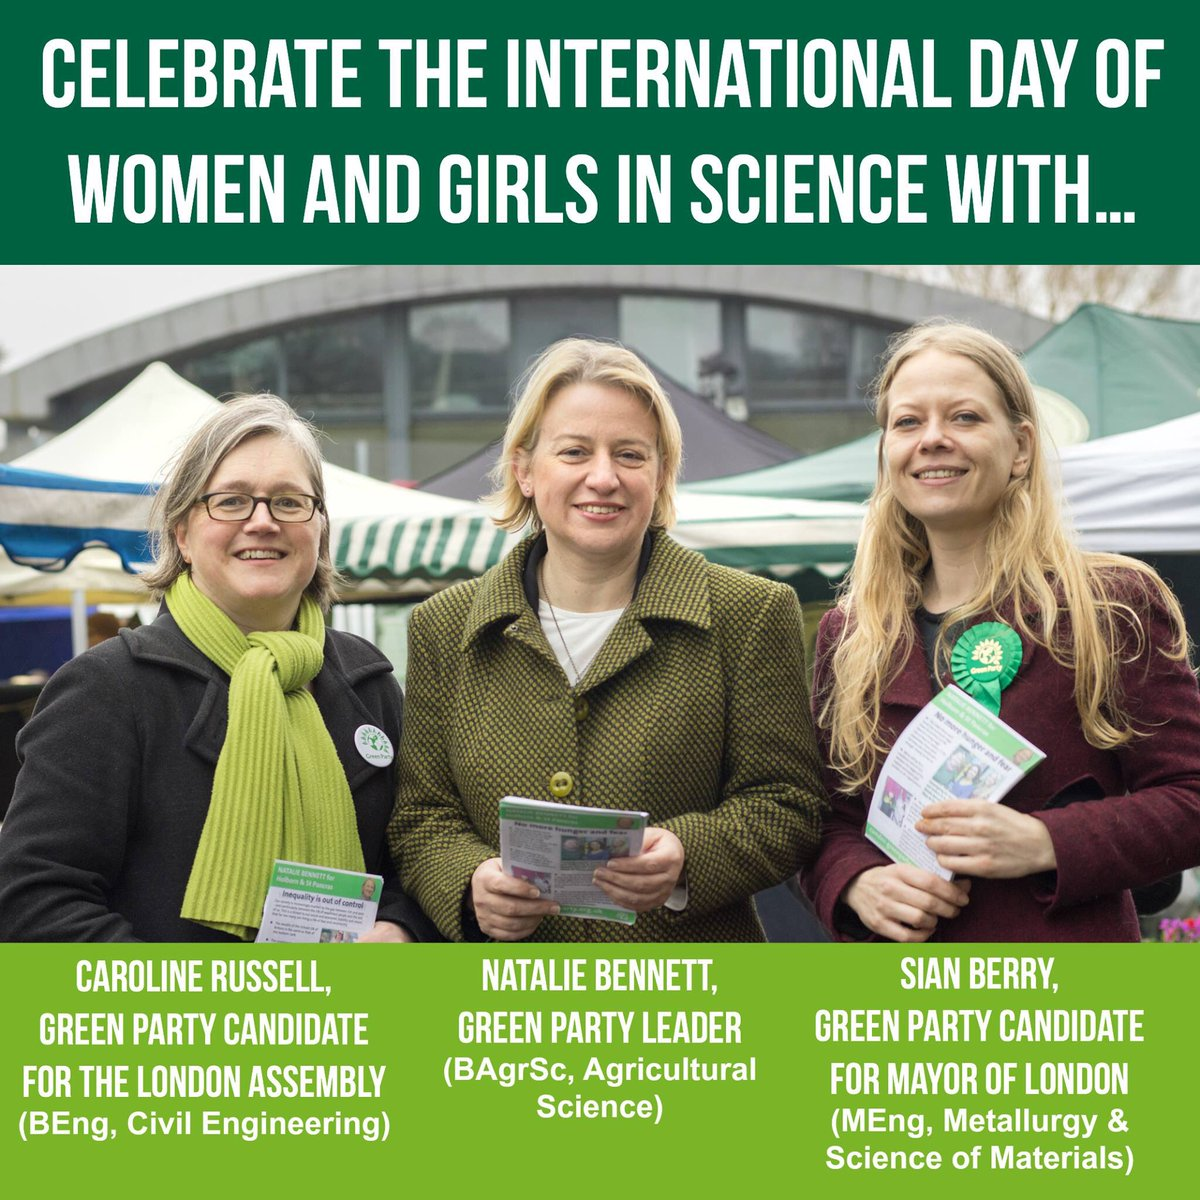 Work hard at science & you too can be a politician! Celebrating women & girls in science w @sianberry & @natalieben https://t.co/DoMMHtIFkZ